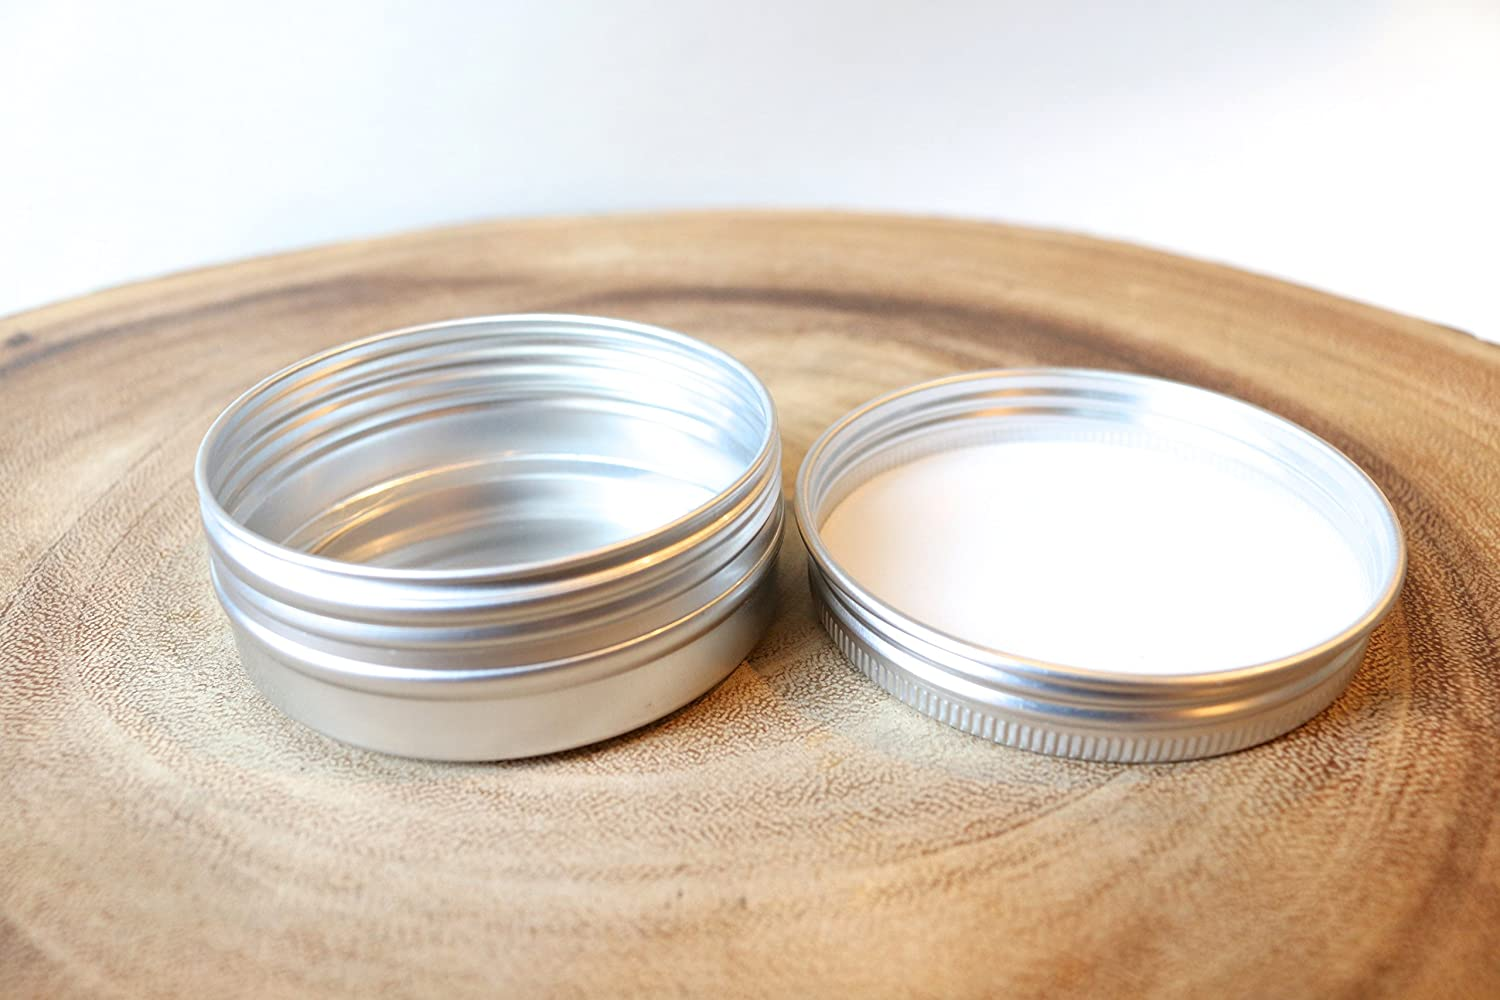 1oz Screw Top Round Tin Containers for All items in the Max 76% OFF store Candles Crafts Cosmetics